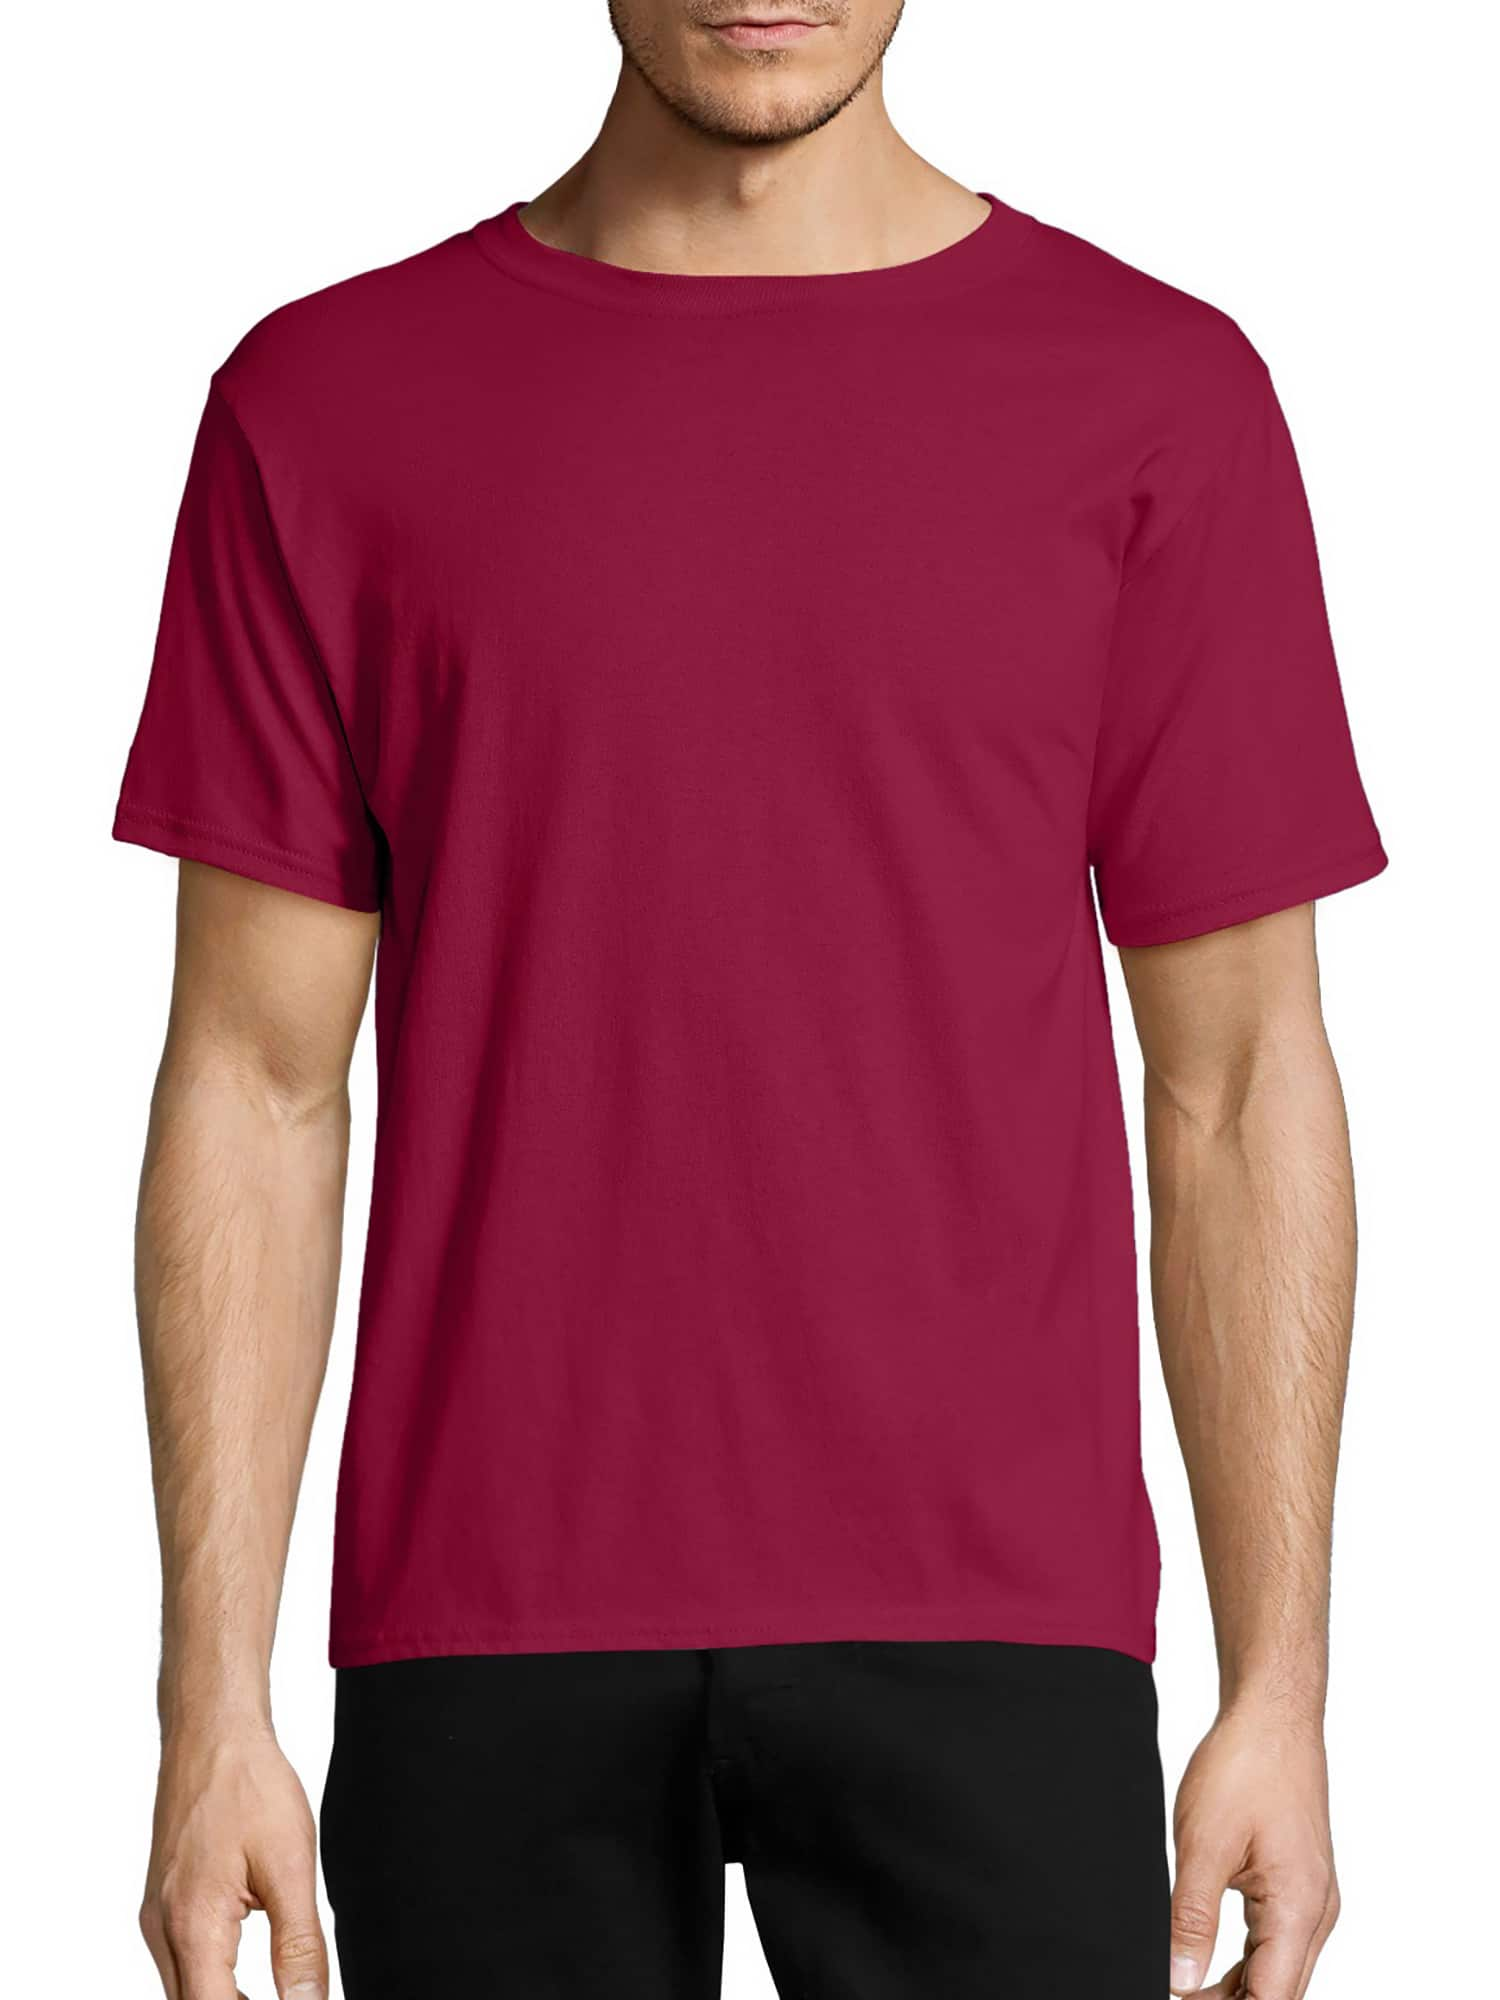 Hanes Men's Ecosmart Short Sleeve Tee $3.70 (different sizes and colors) @ Walmart free shipping over $35